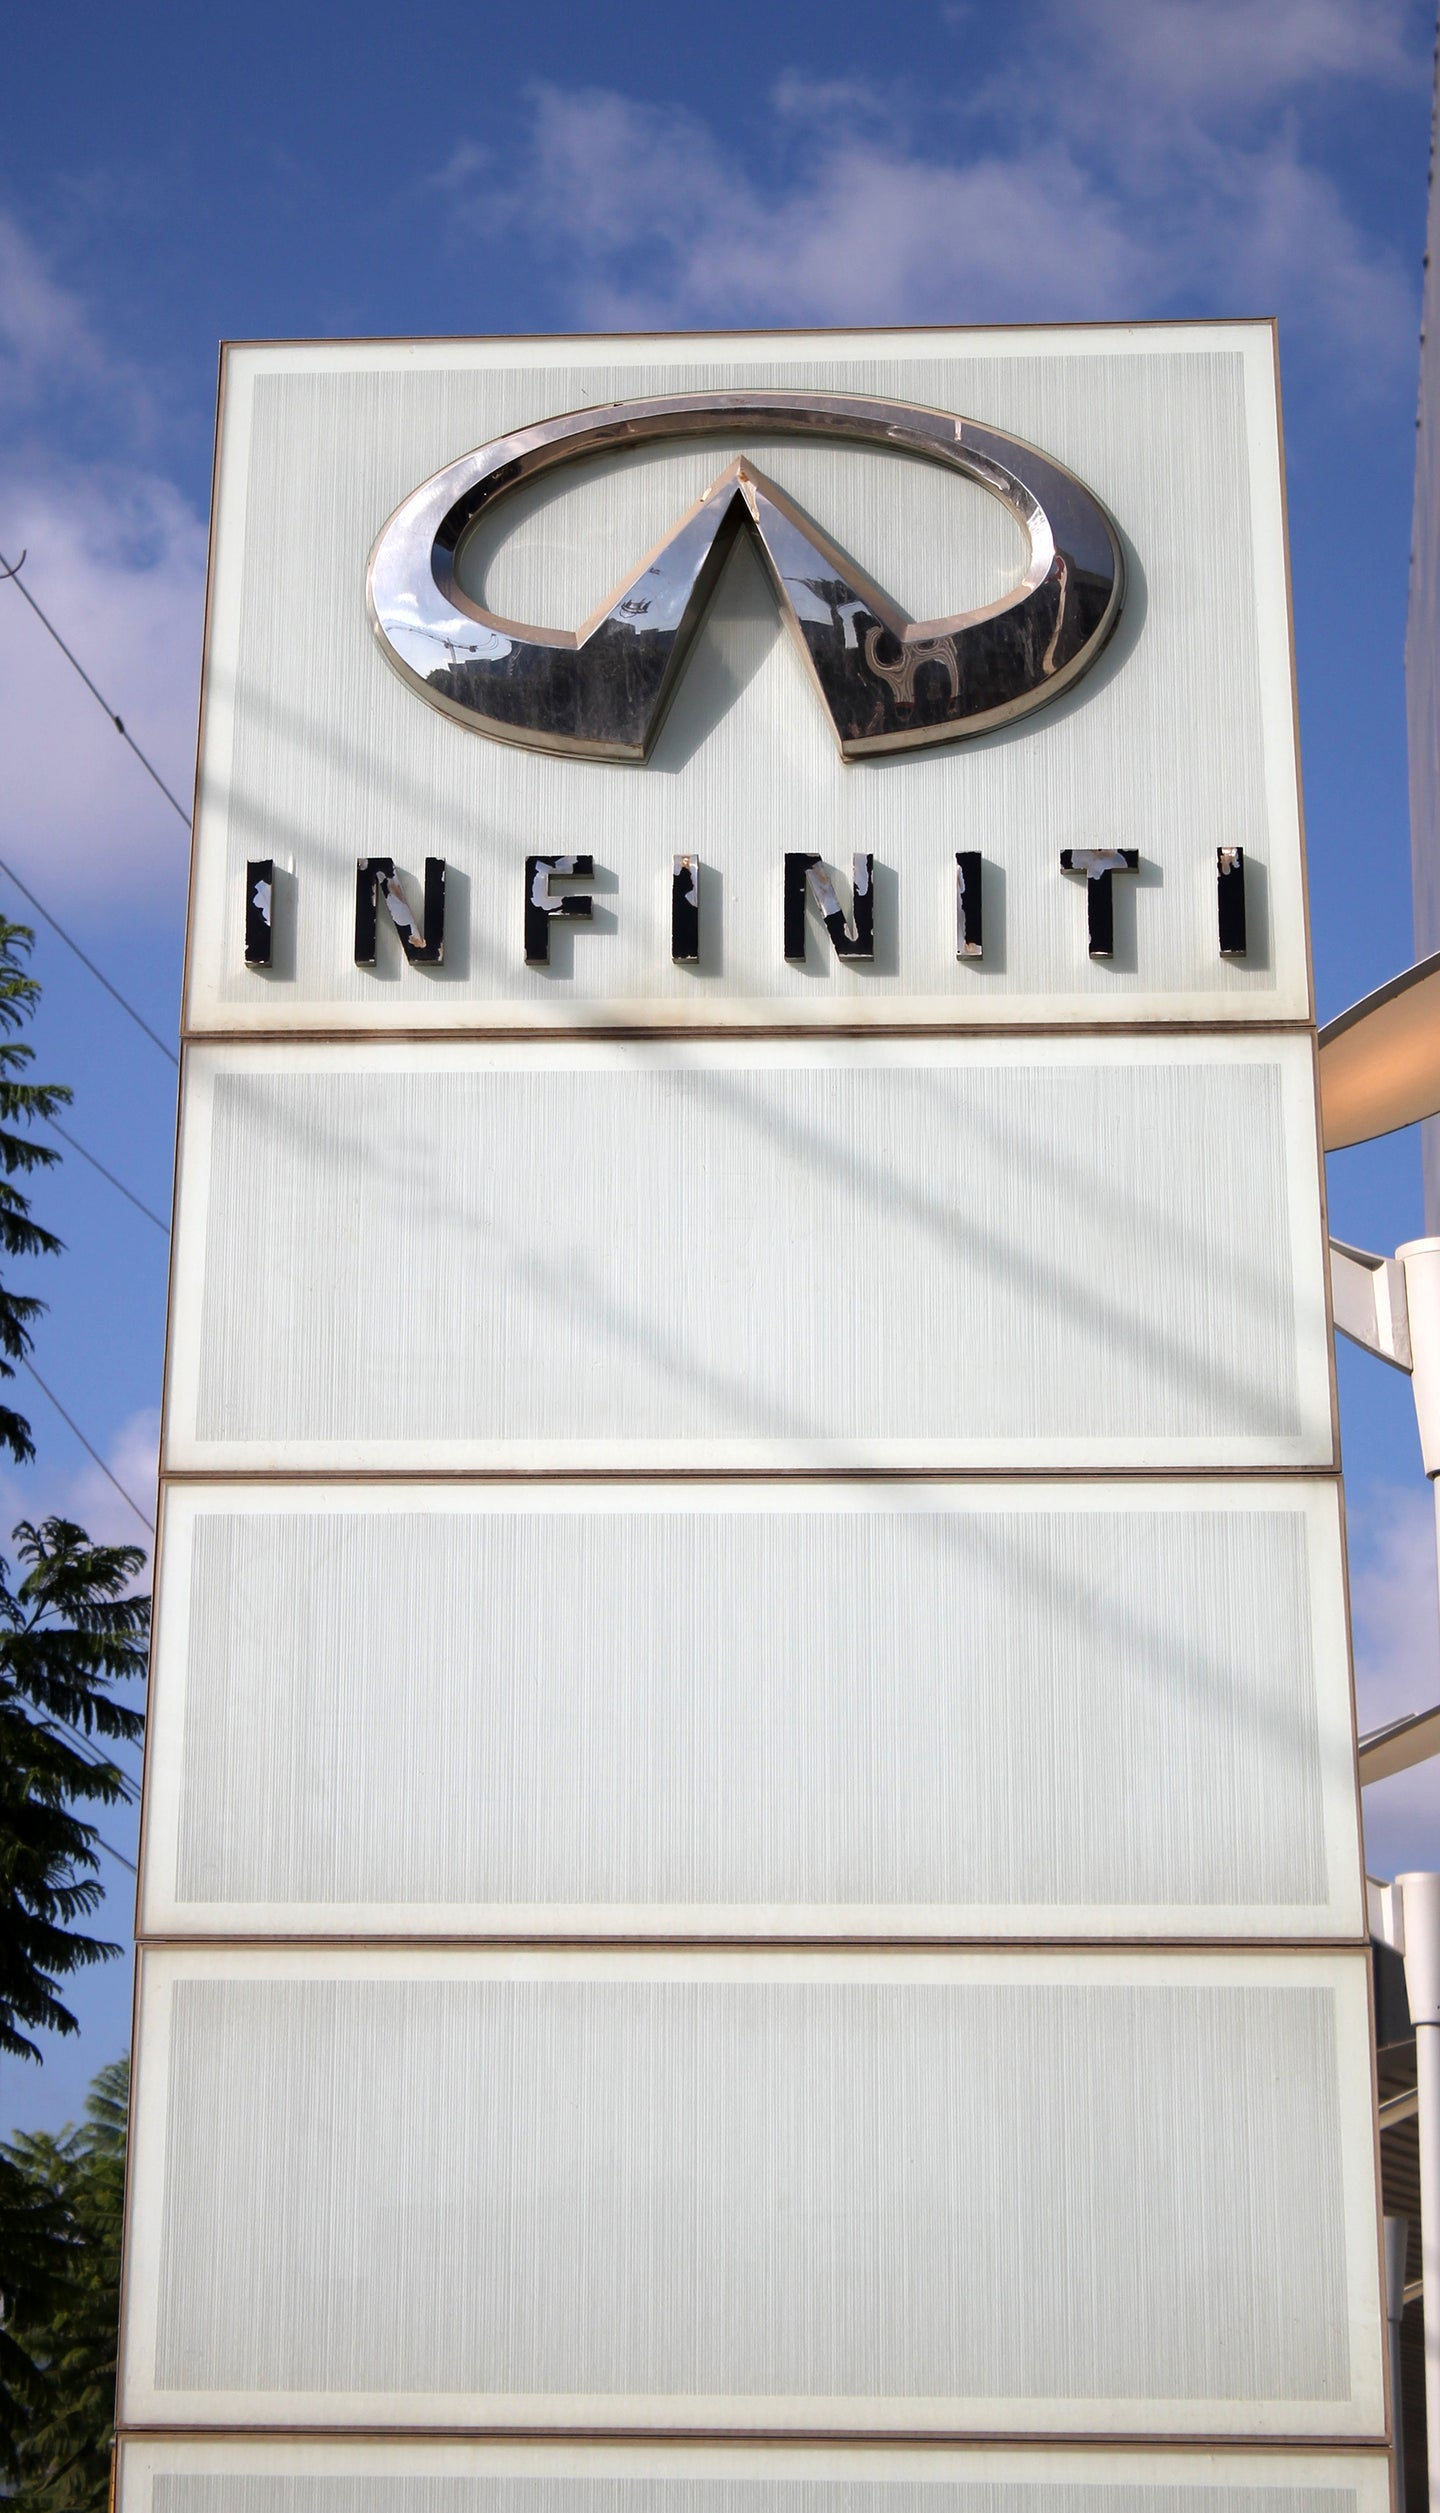 All You Need to Know About the Infiniti Warranty Coverage